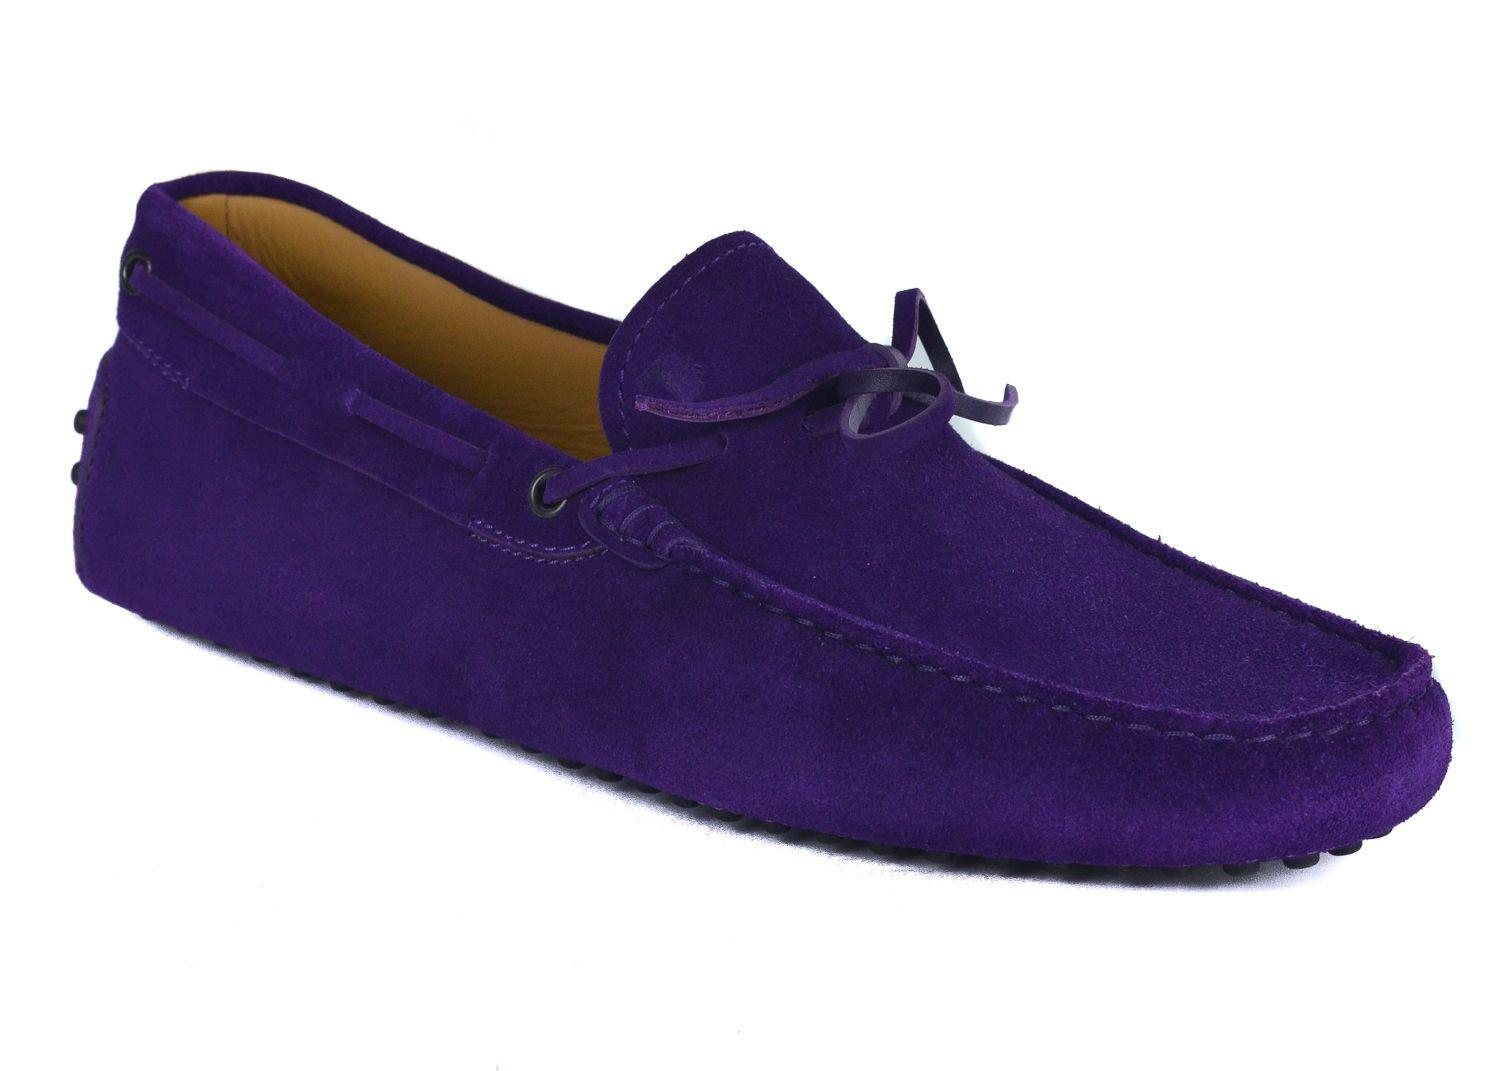 online store a0b75 29809 tods--Mens-Purple-Suede-Slip-On-Self-tie-Driver-Loafers.jpeg